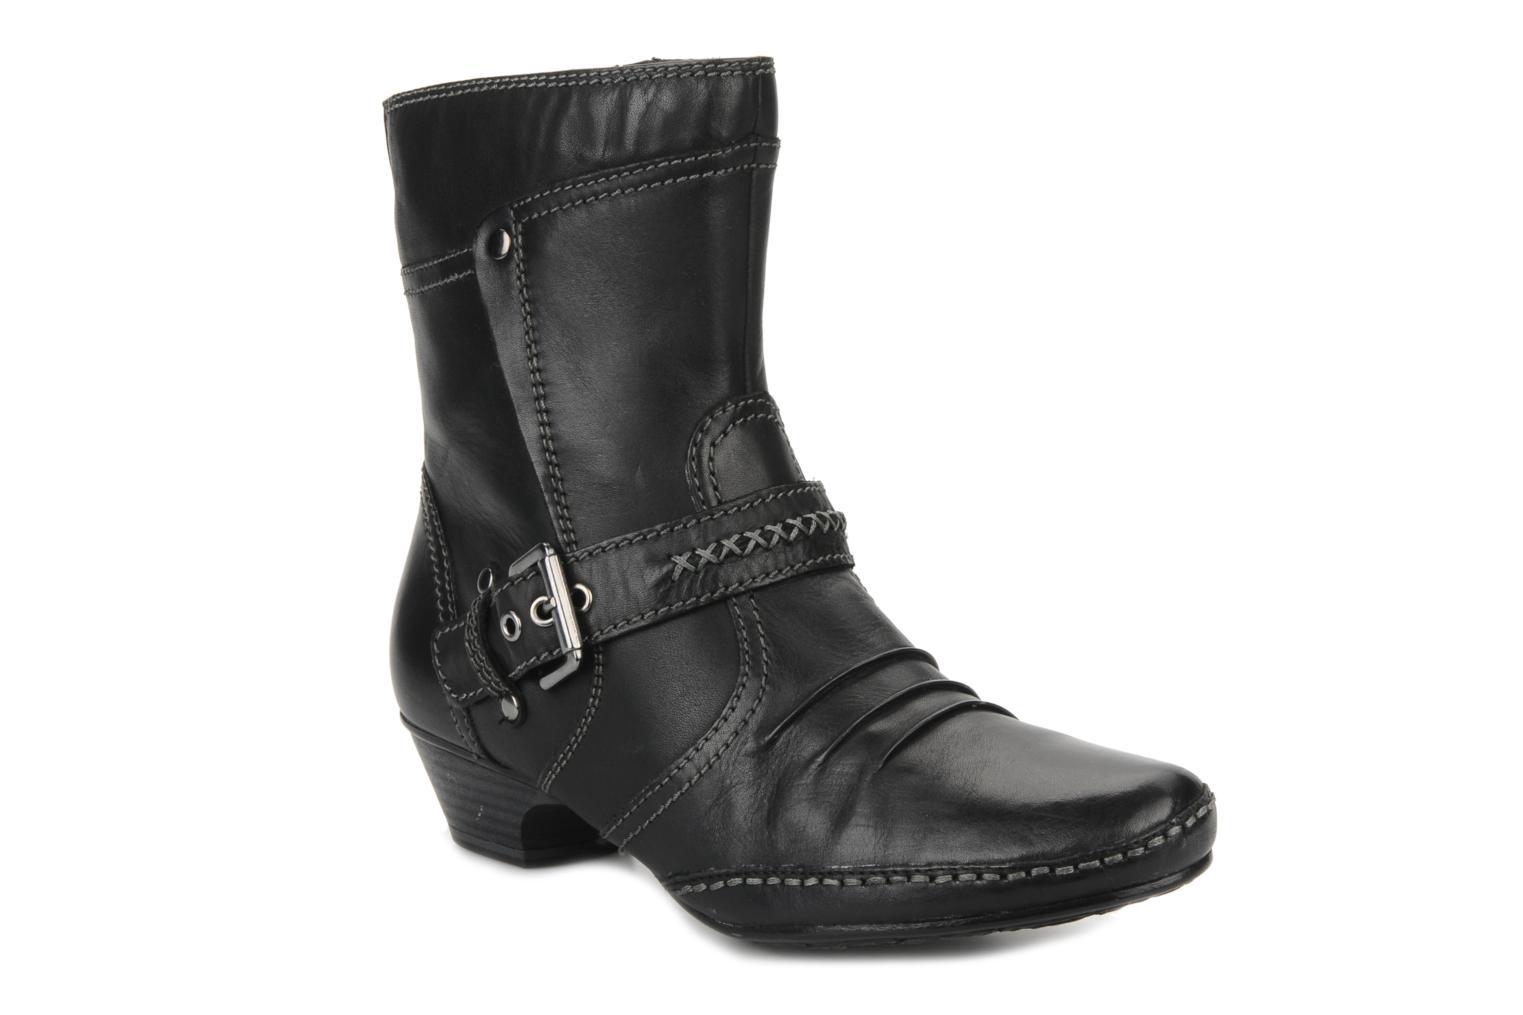 Louk Black leather